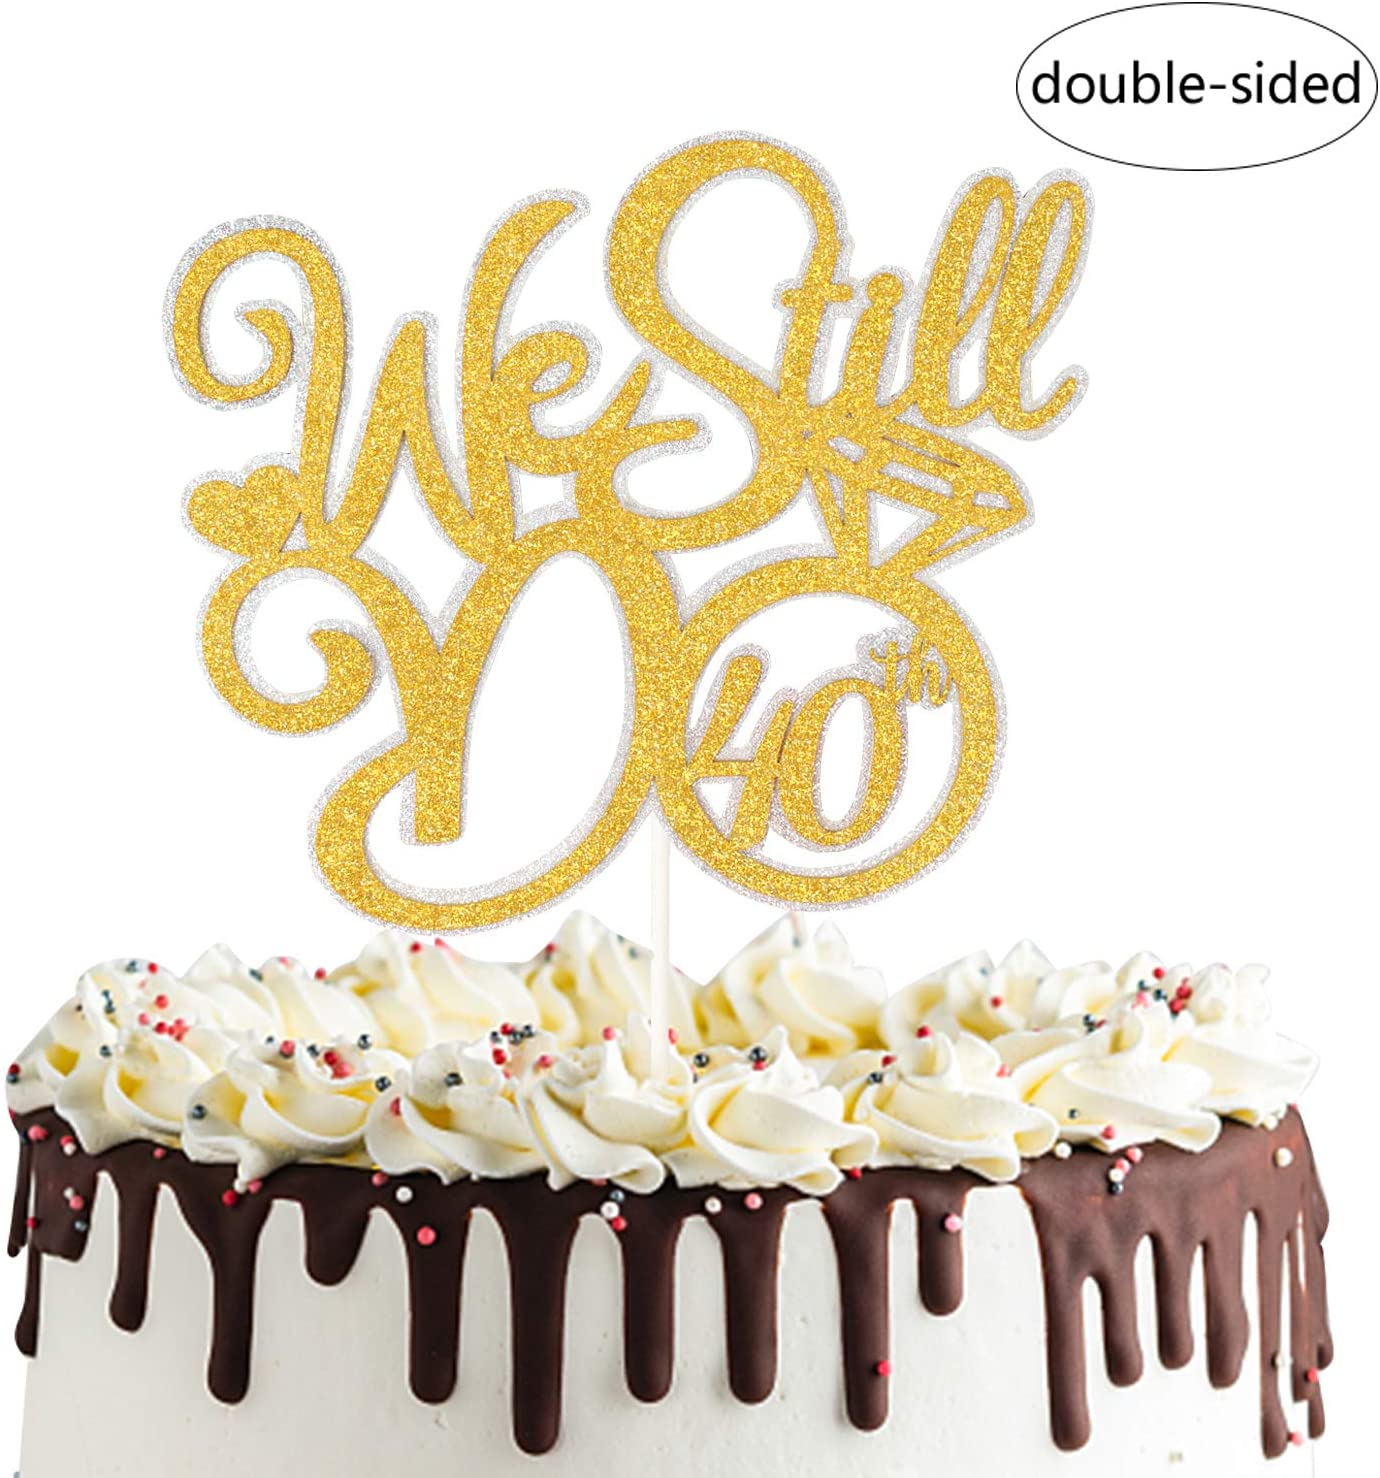 We Still Do 40th Cake Topper,Vow Renewal Cheers To 40 Years Cake Decor,40th Wedding Anniversary Party Decorations